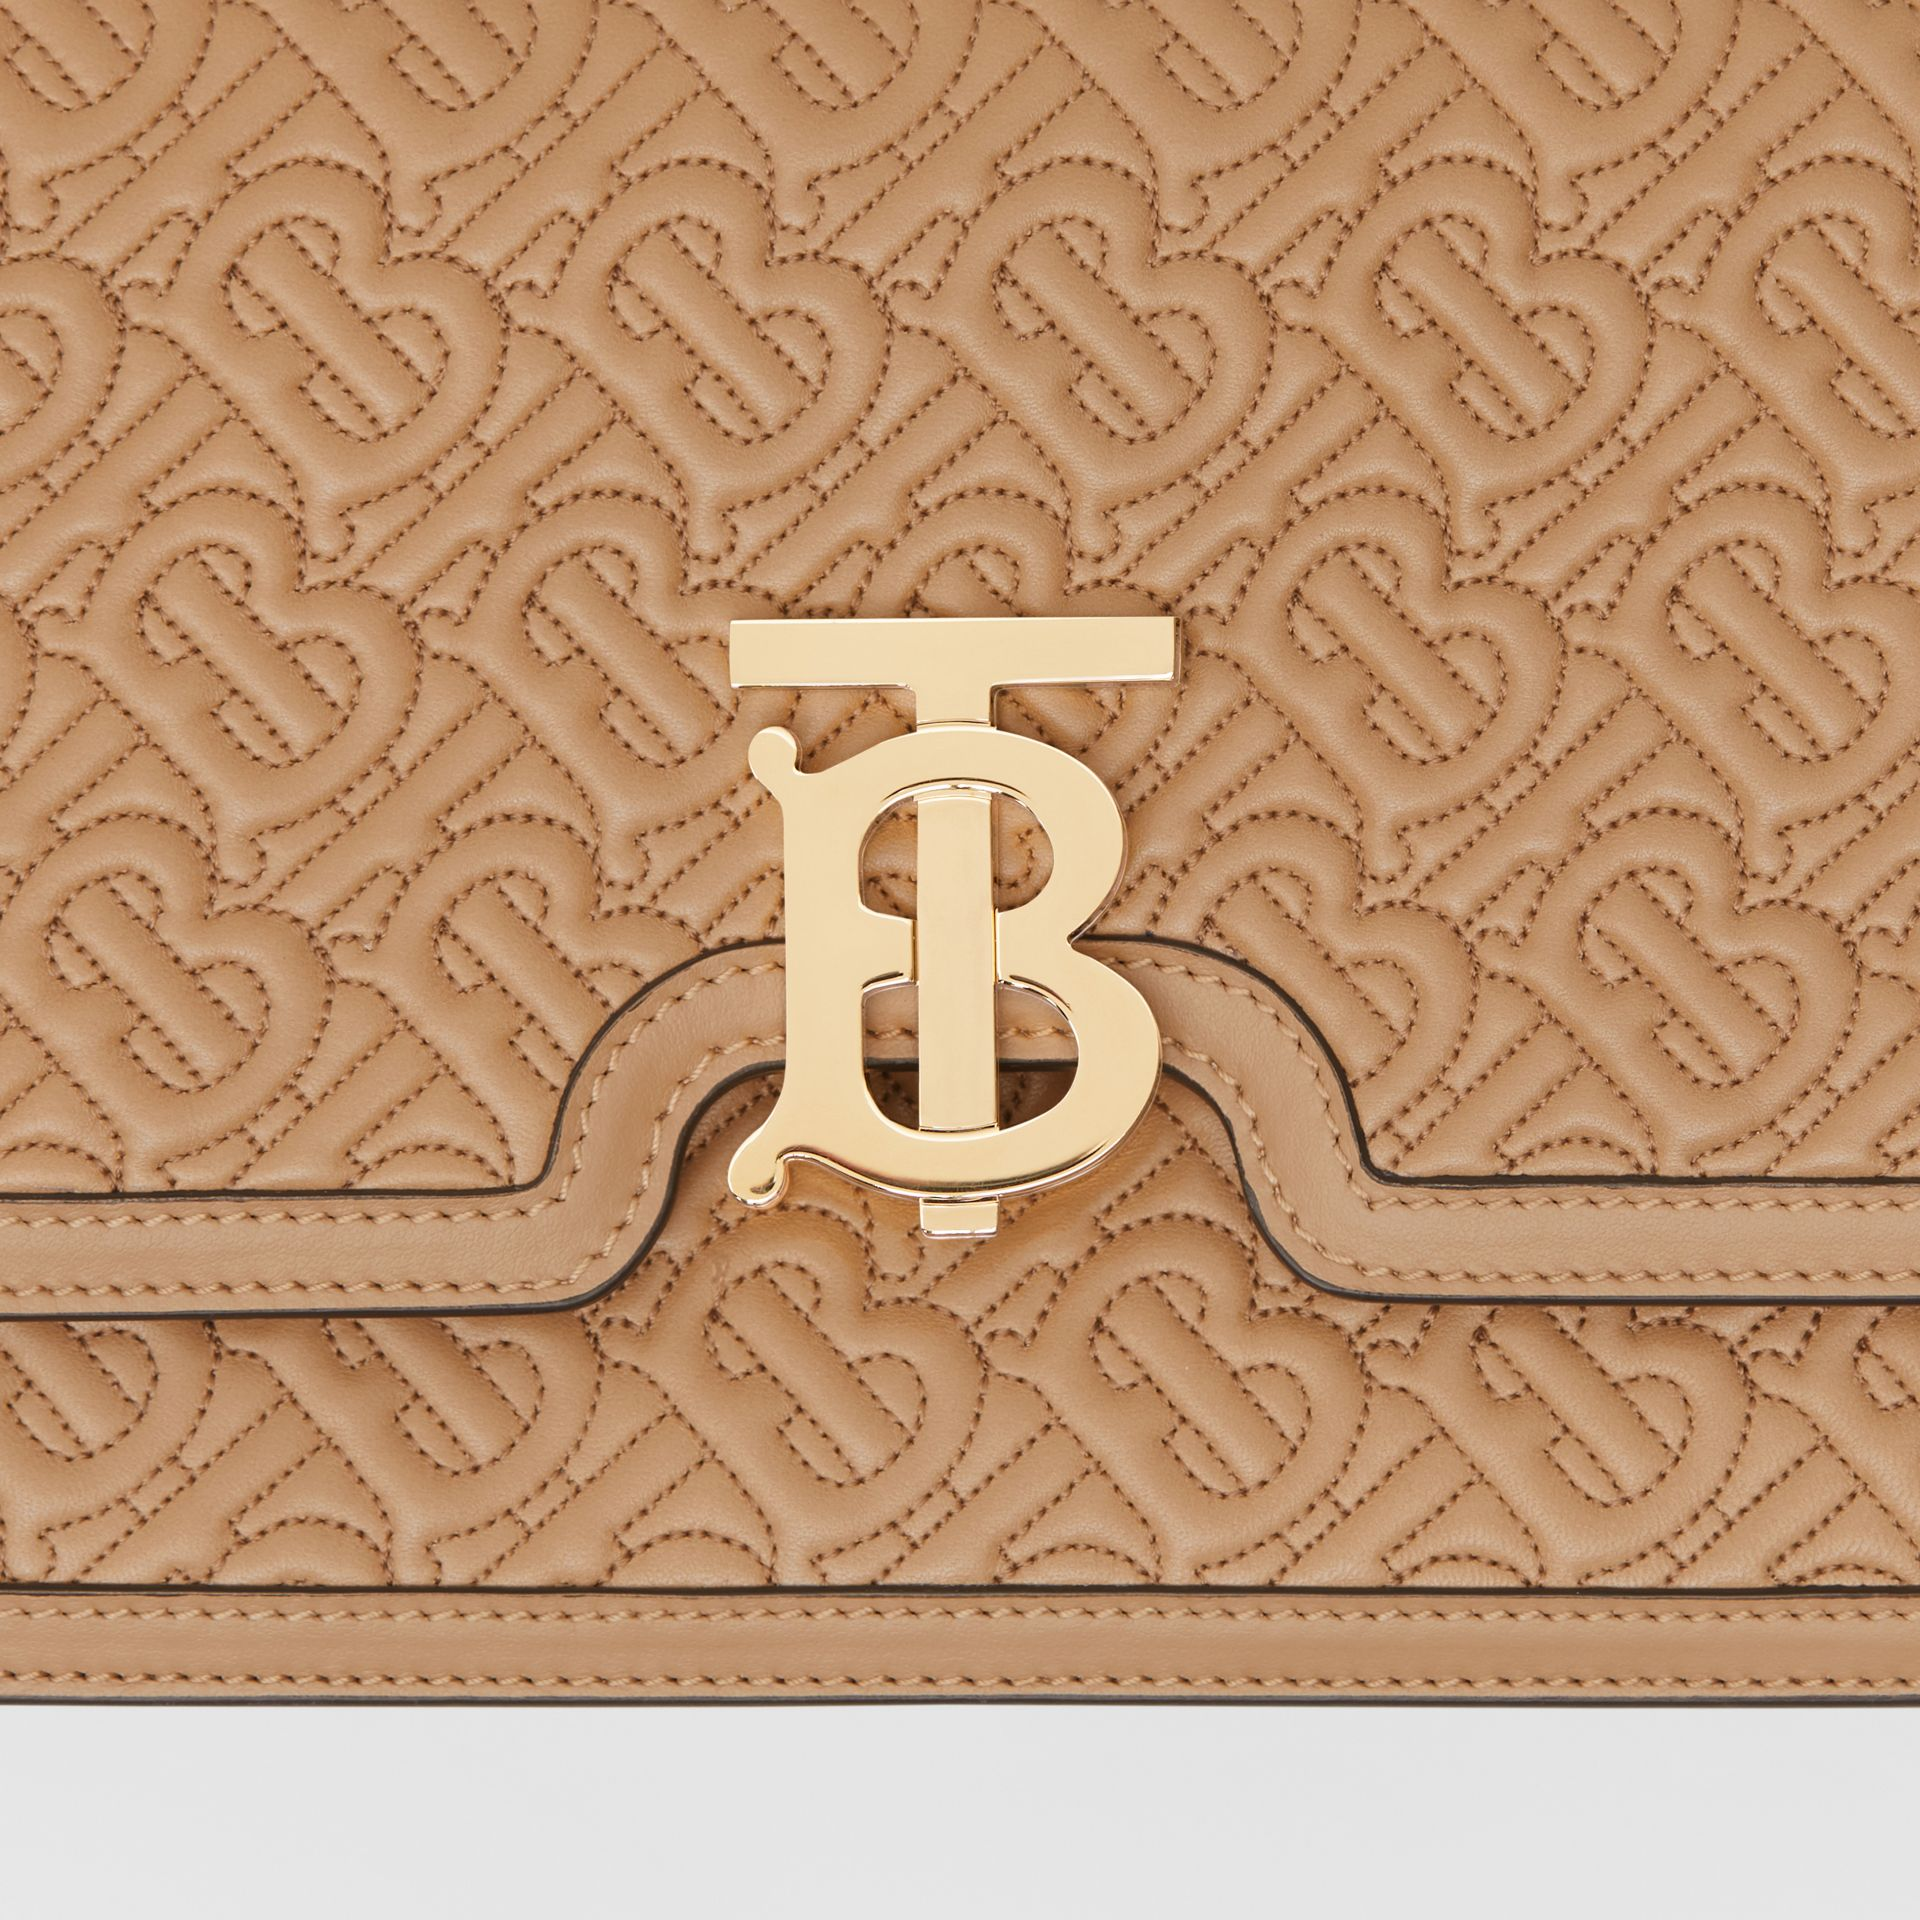 Medium Quilted Monogram Lambskin TB Bag in Honey - Women | Burberry United Kingdom - gallery image 1